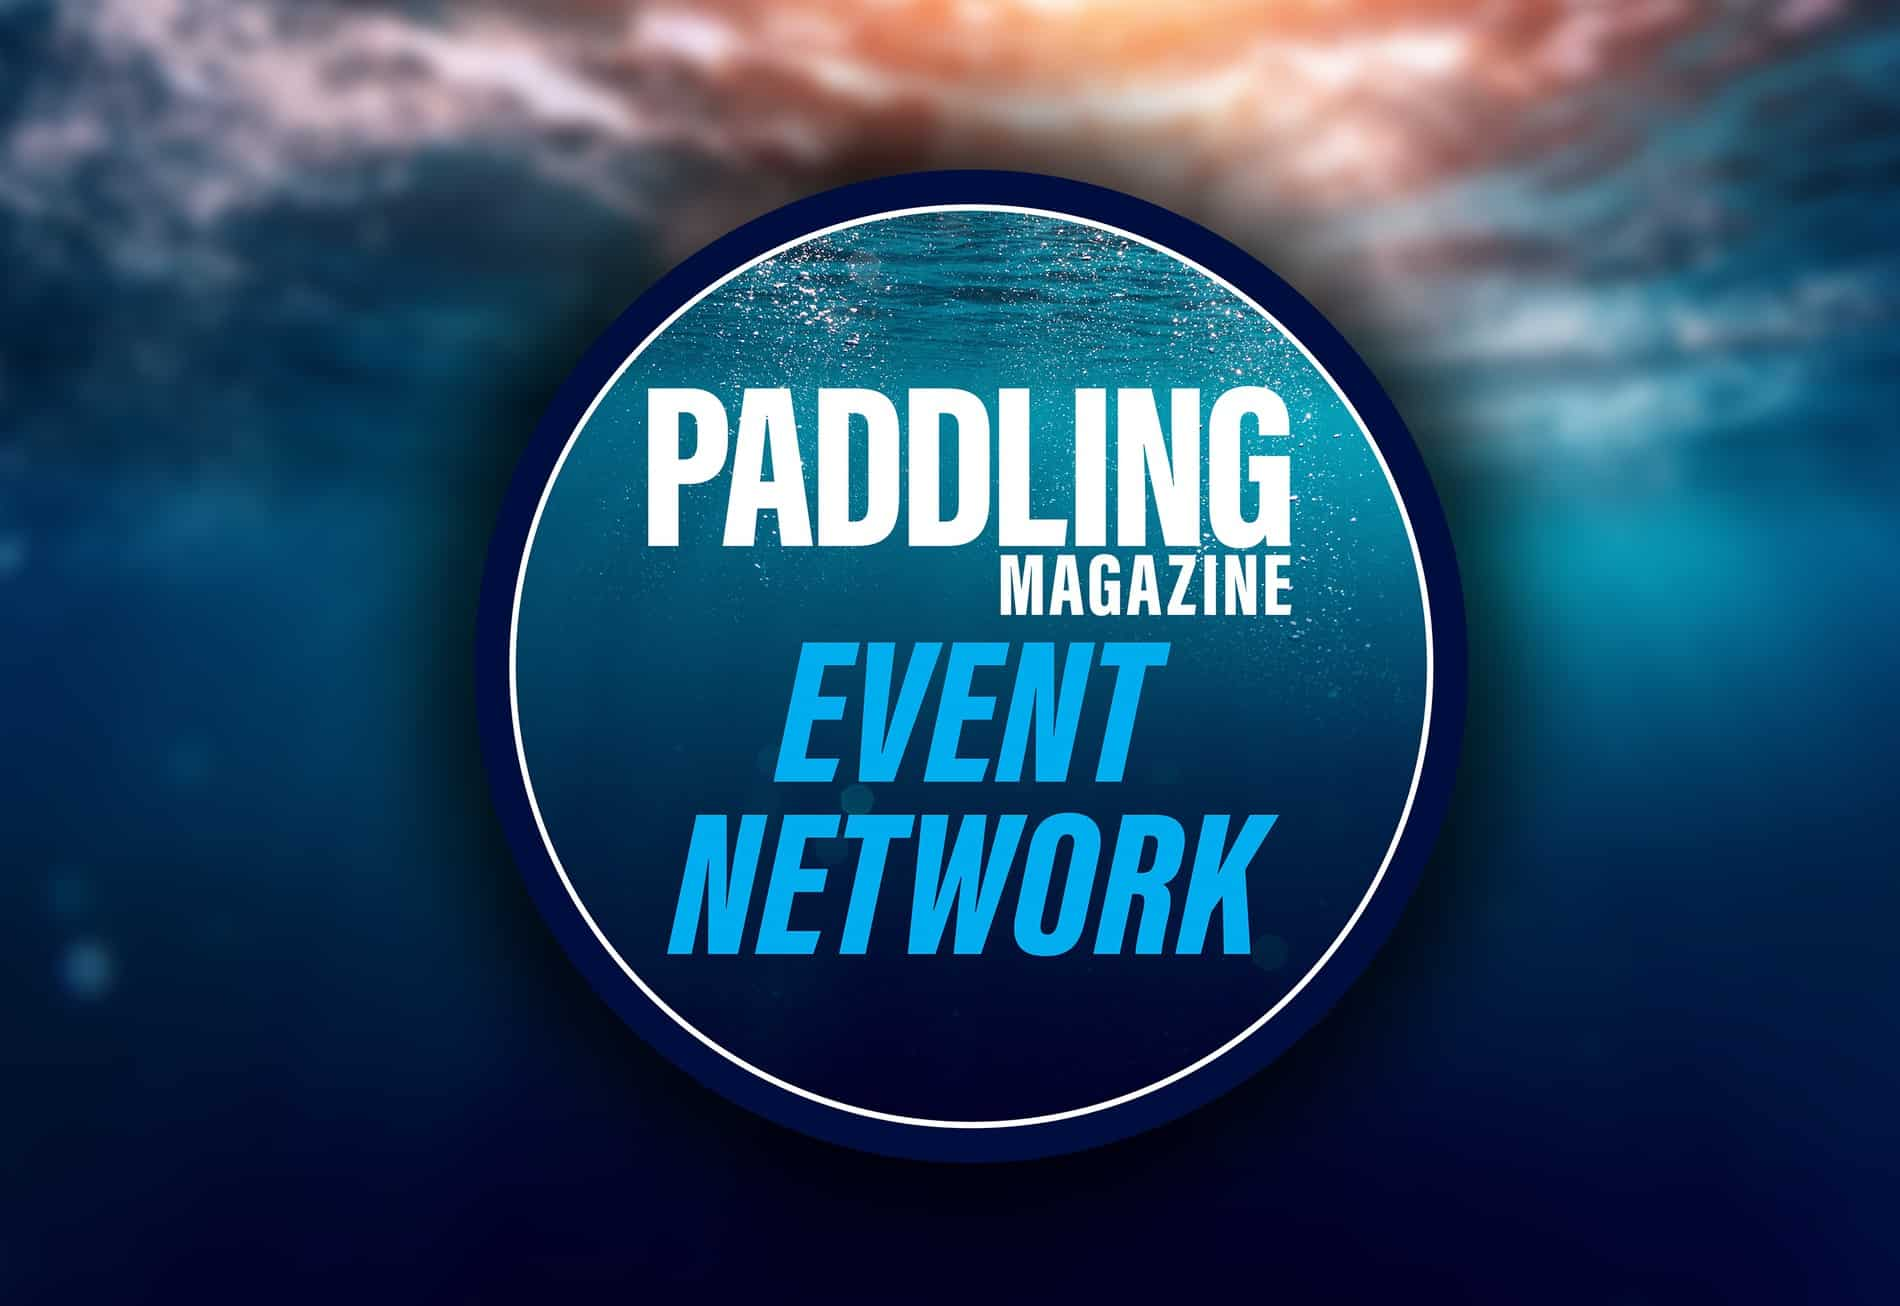 Paddling Magazine Event Network